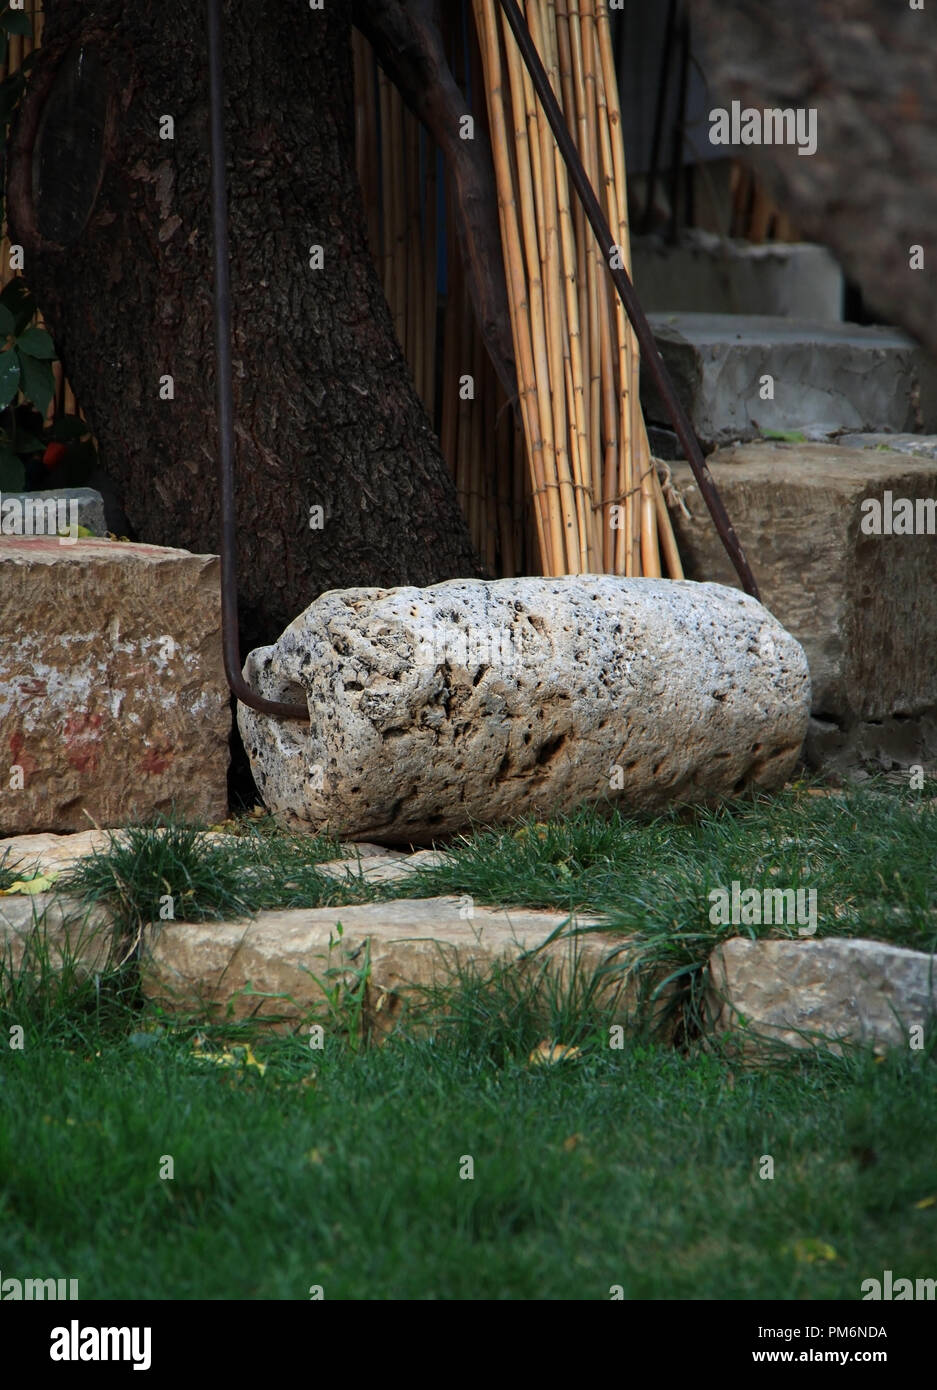 A rolling stone traditionally used construction in Lebanon, now obsolete and used only for decorating gardens. - Stock Image